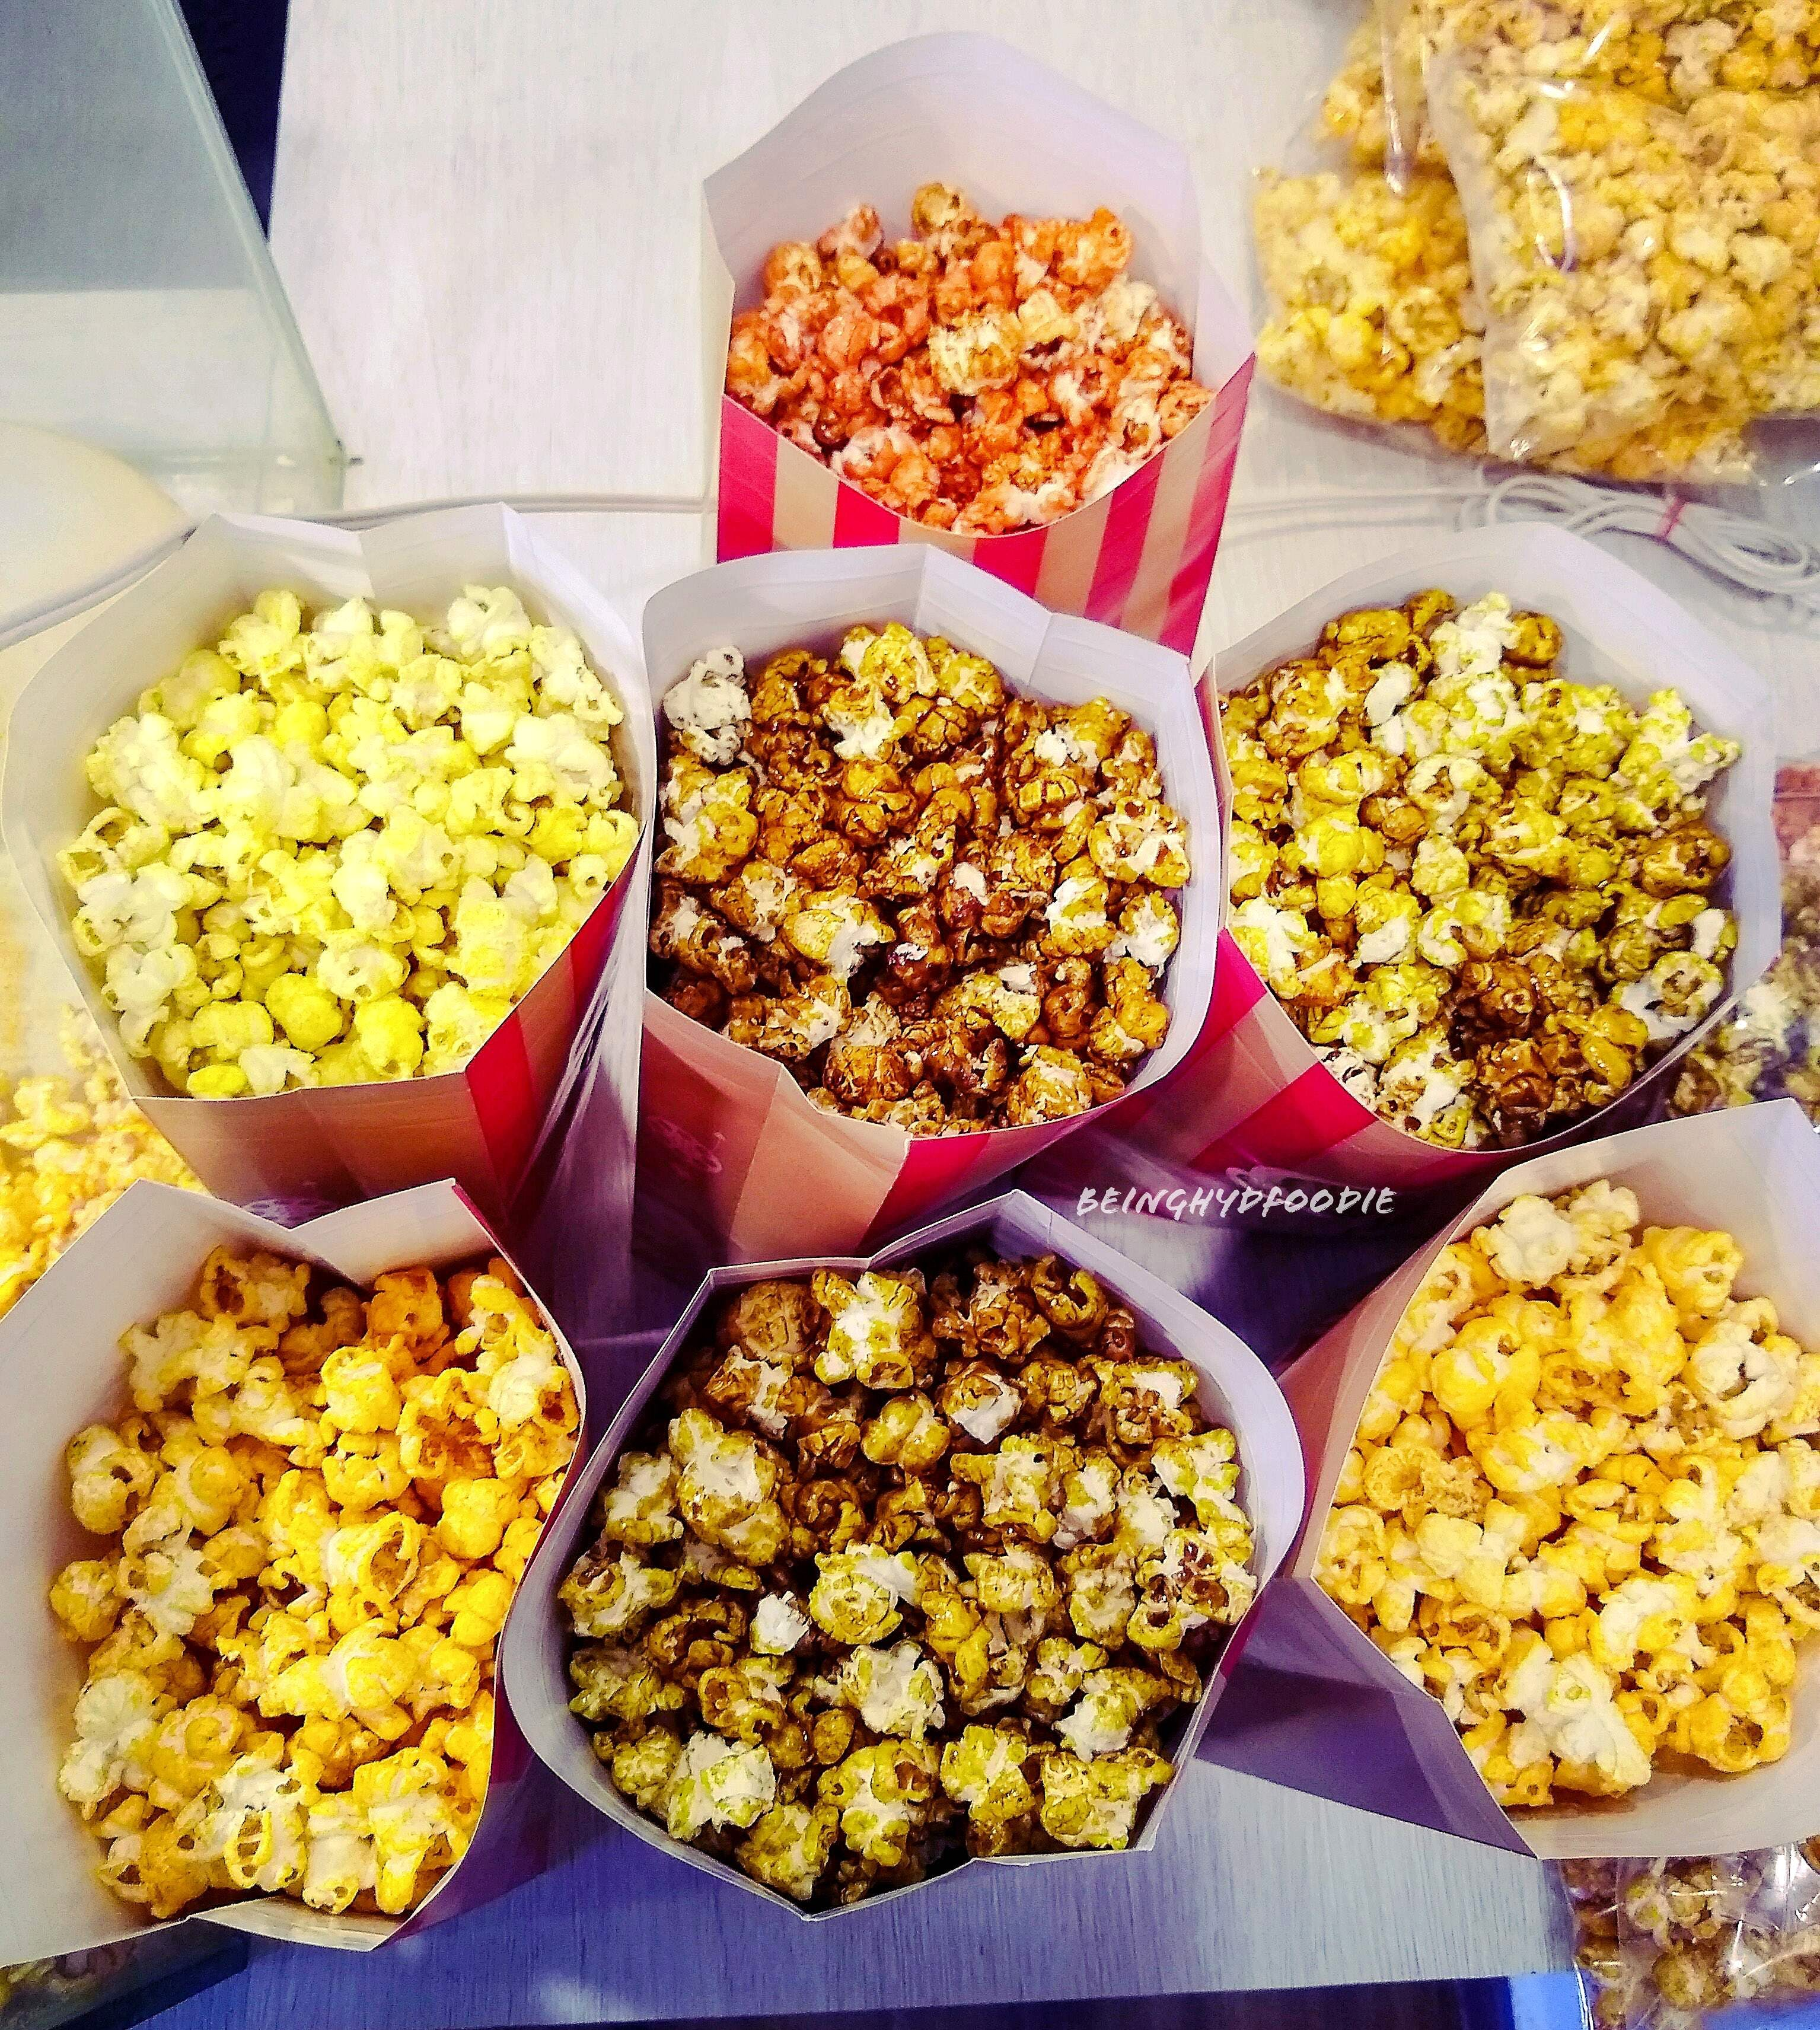 Food,Popcorn,Kettle corn,Cuisine,Caramel corn,Snack,Dish,Ingredient,American food,Produce